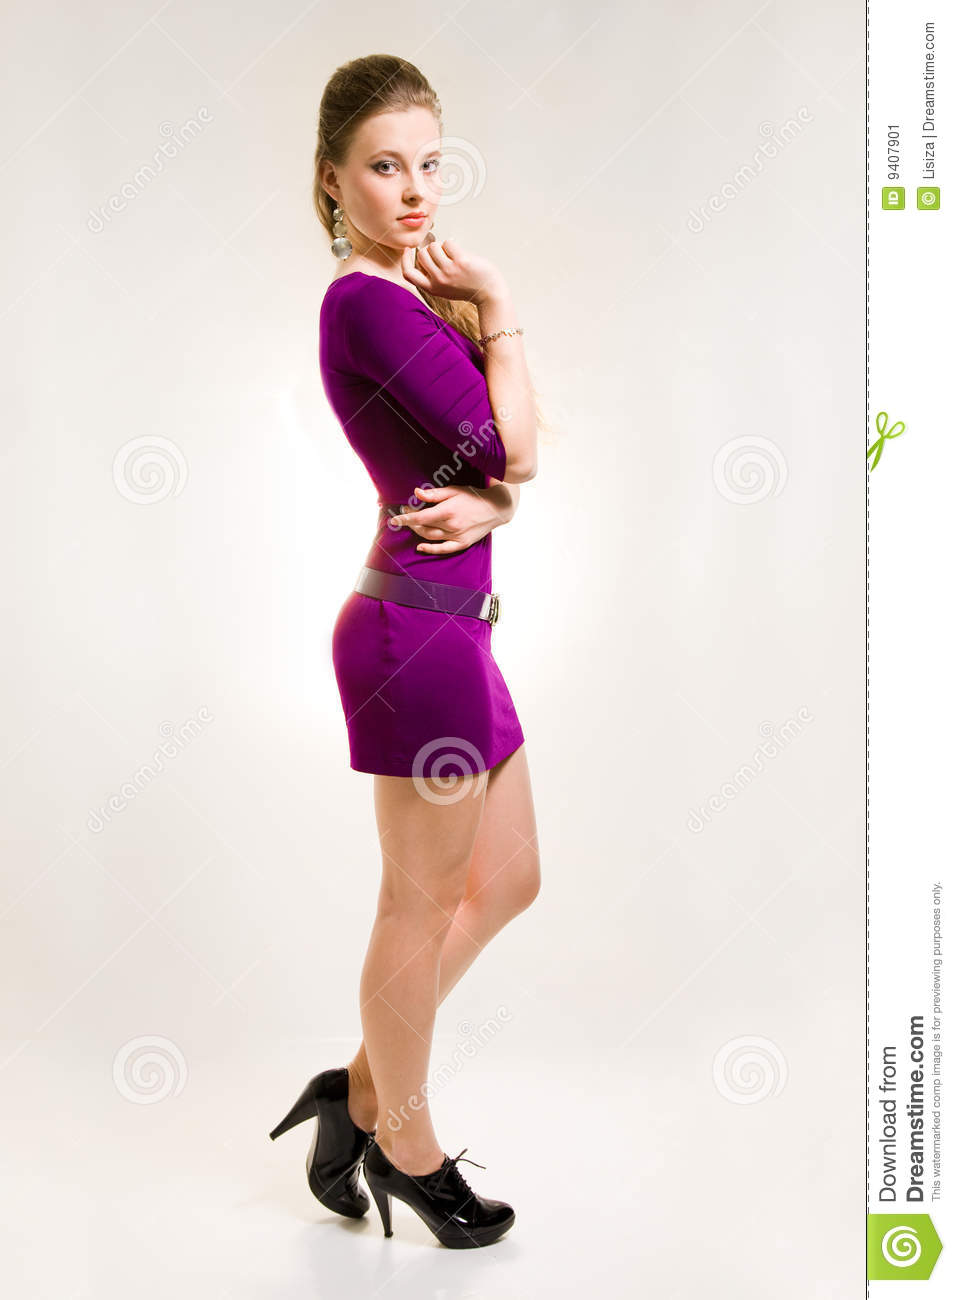 Beautiful Girl In Purple Dress And Black Shoes Stock Image - Image ...